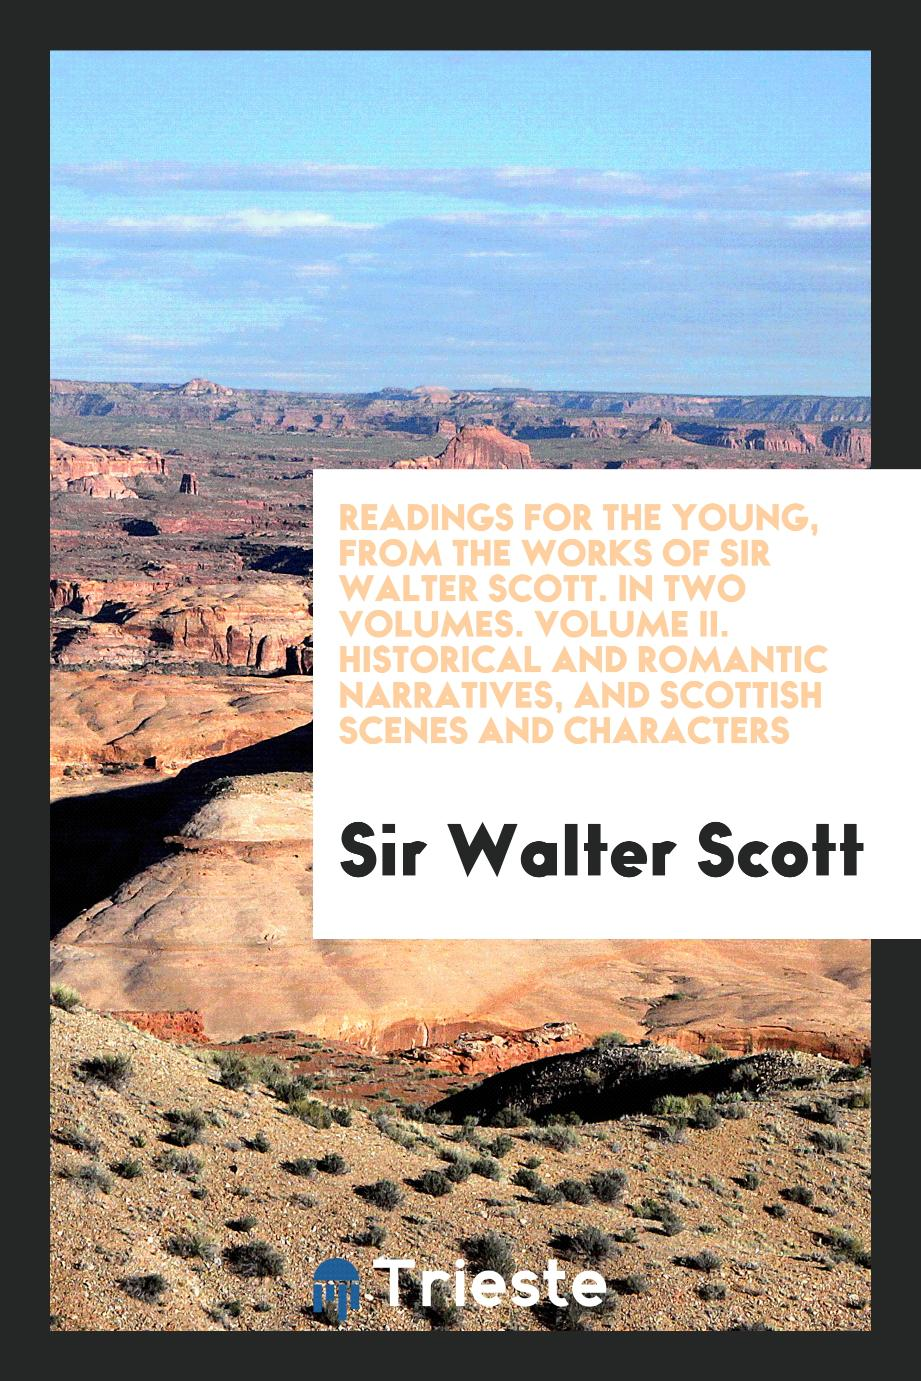 Readings for the Young, from the Works of Sir Walter Scott. In Two Volumes. Volume II. Historical and Romantic Narratives, and Scottish Scenes and Characters